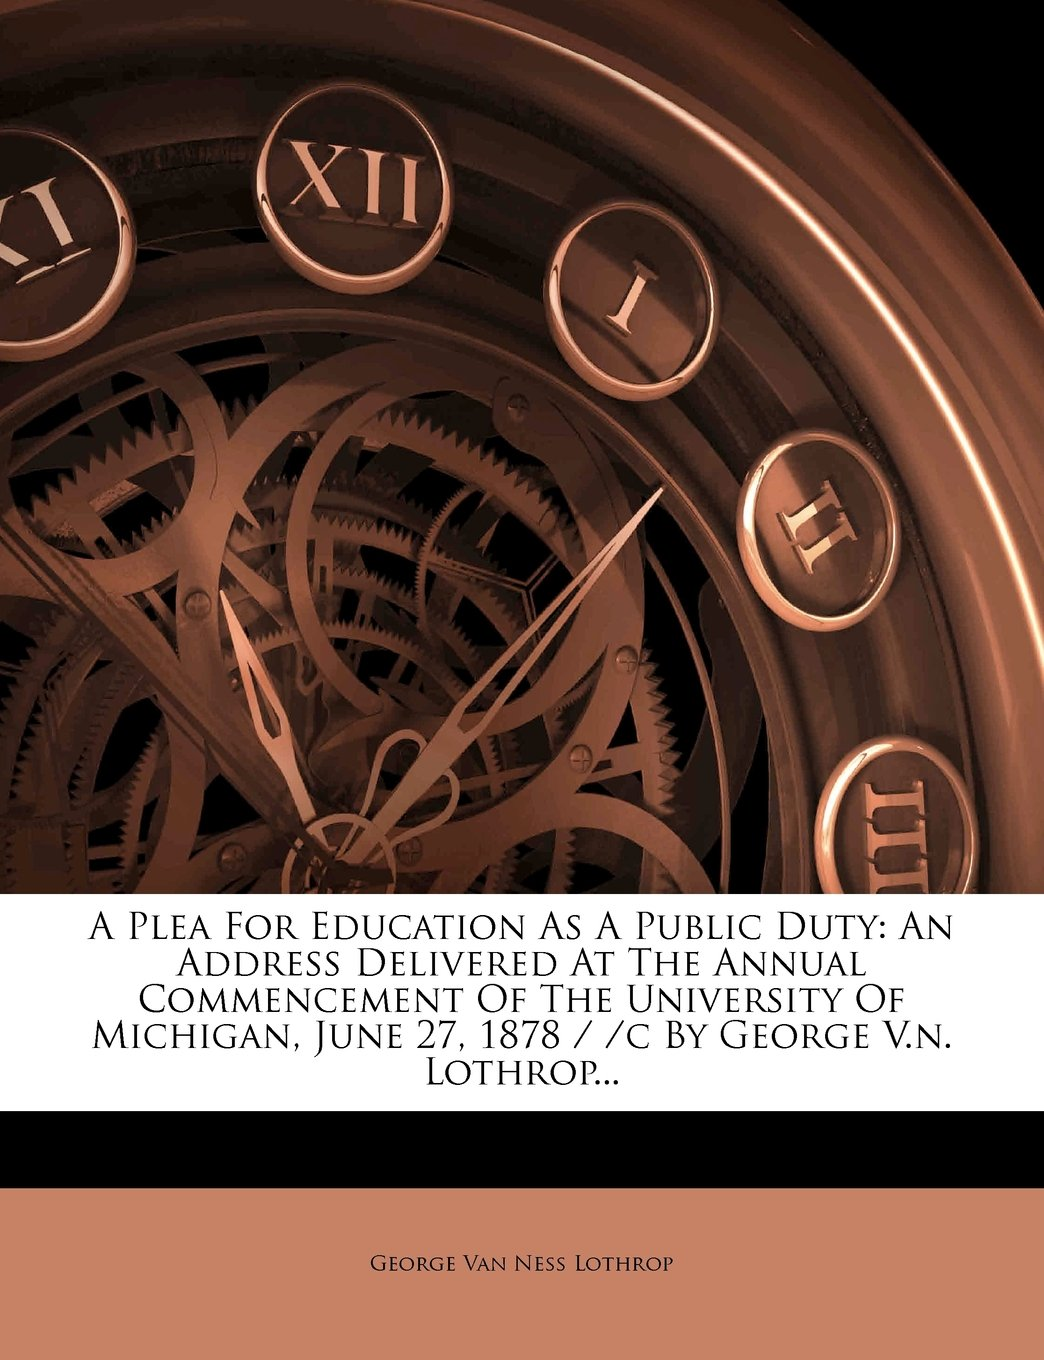 A Plea For Education As A Public Duty: An Address Delivered At The Annual Commencement Of The University Of Michigan, June 27, 1878 / /c By George V.n. Lothrop... ebook